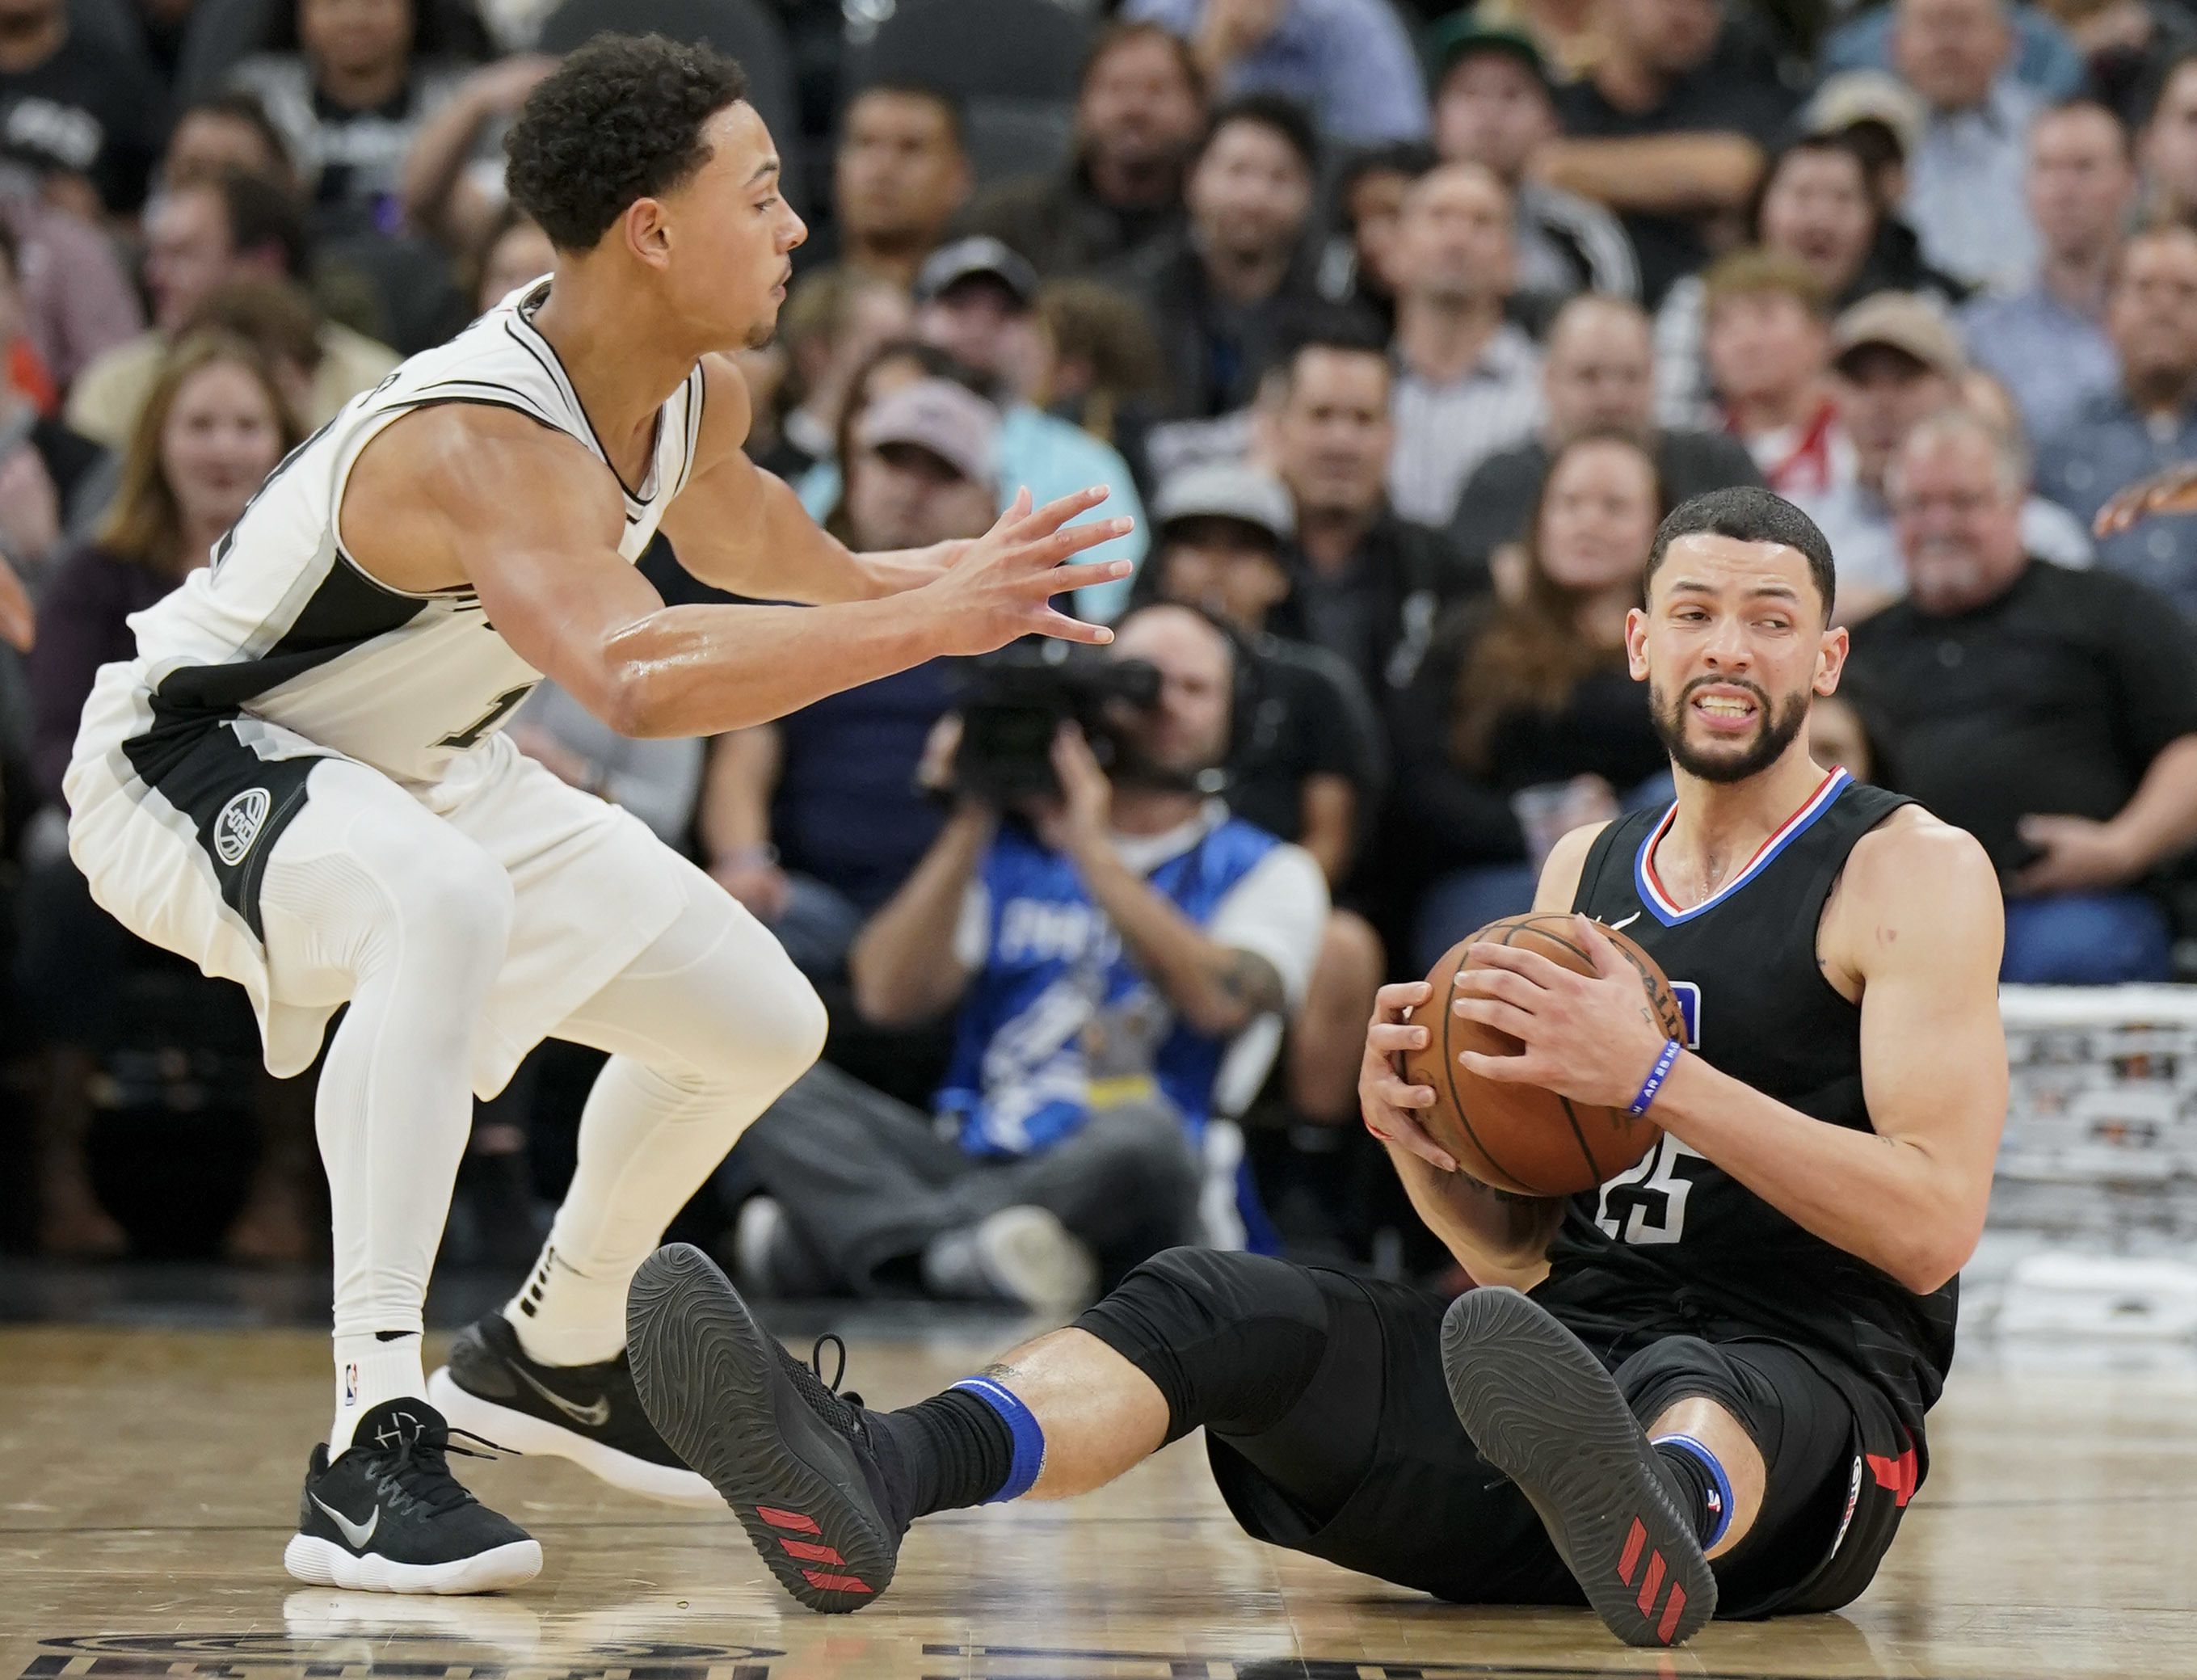 Los Angeles Clippers guard Austin Rivers, right, tangles with San Antonio Spurs guard Bryn Forbes during the second half of an NBA basketball game, Monday, Dec. 18, 2017, in San Antonio. San Antonio won 109-91. (AP Photo/Darren Abate)